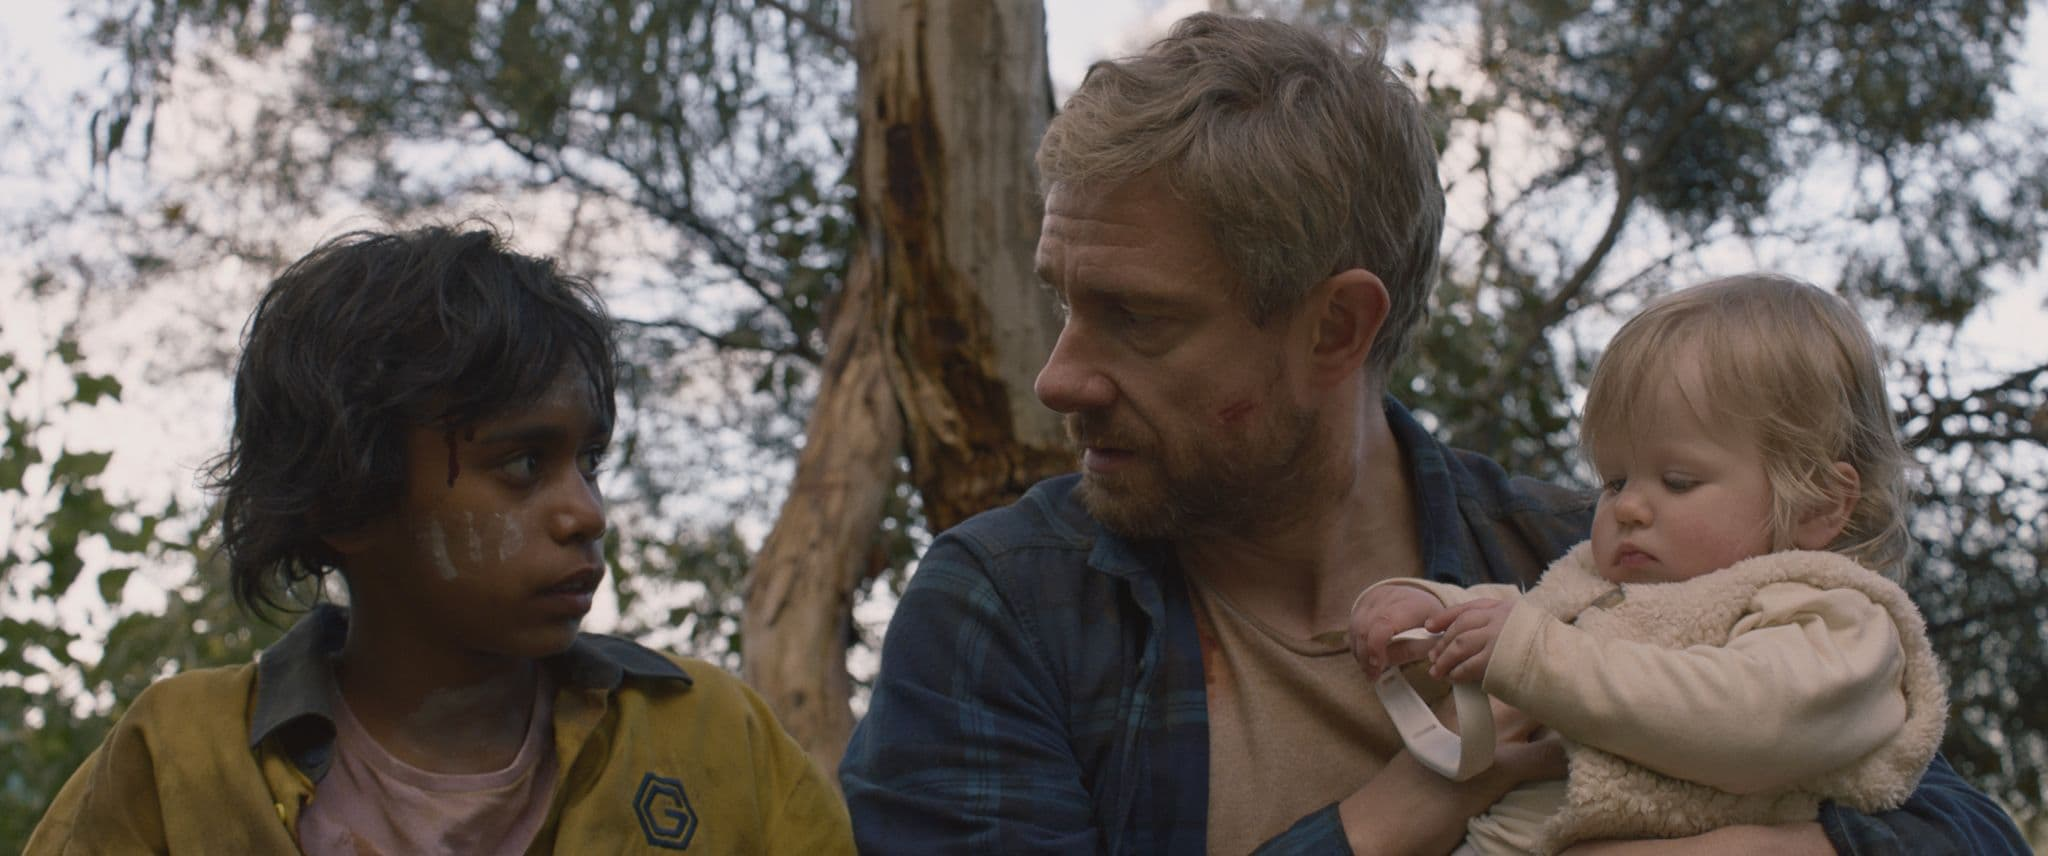 'Cargo' does not live up to expectations (Source: Netflix)